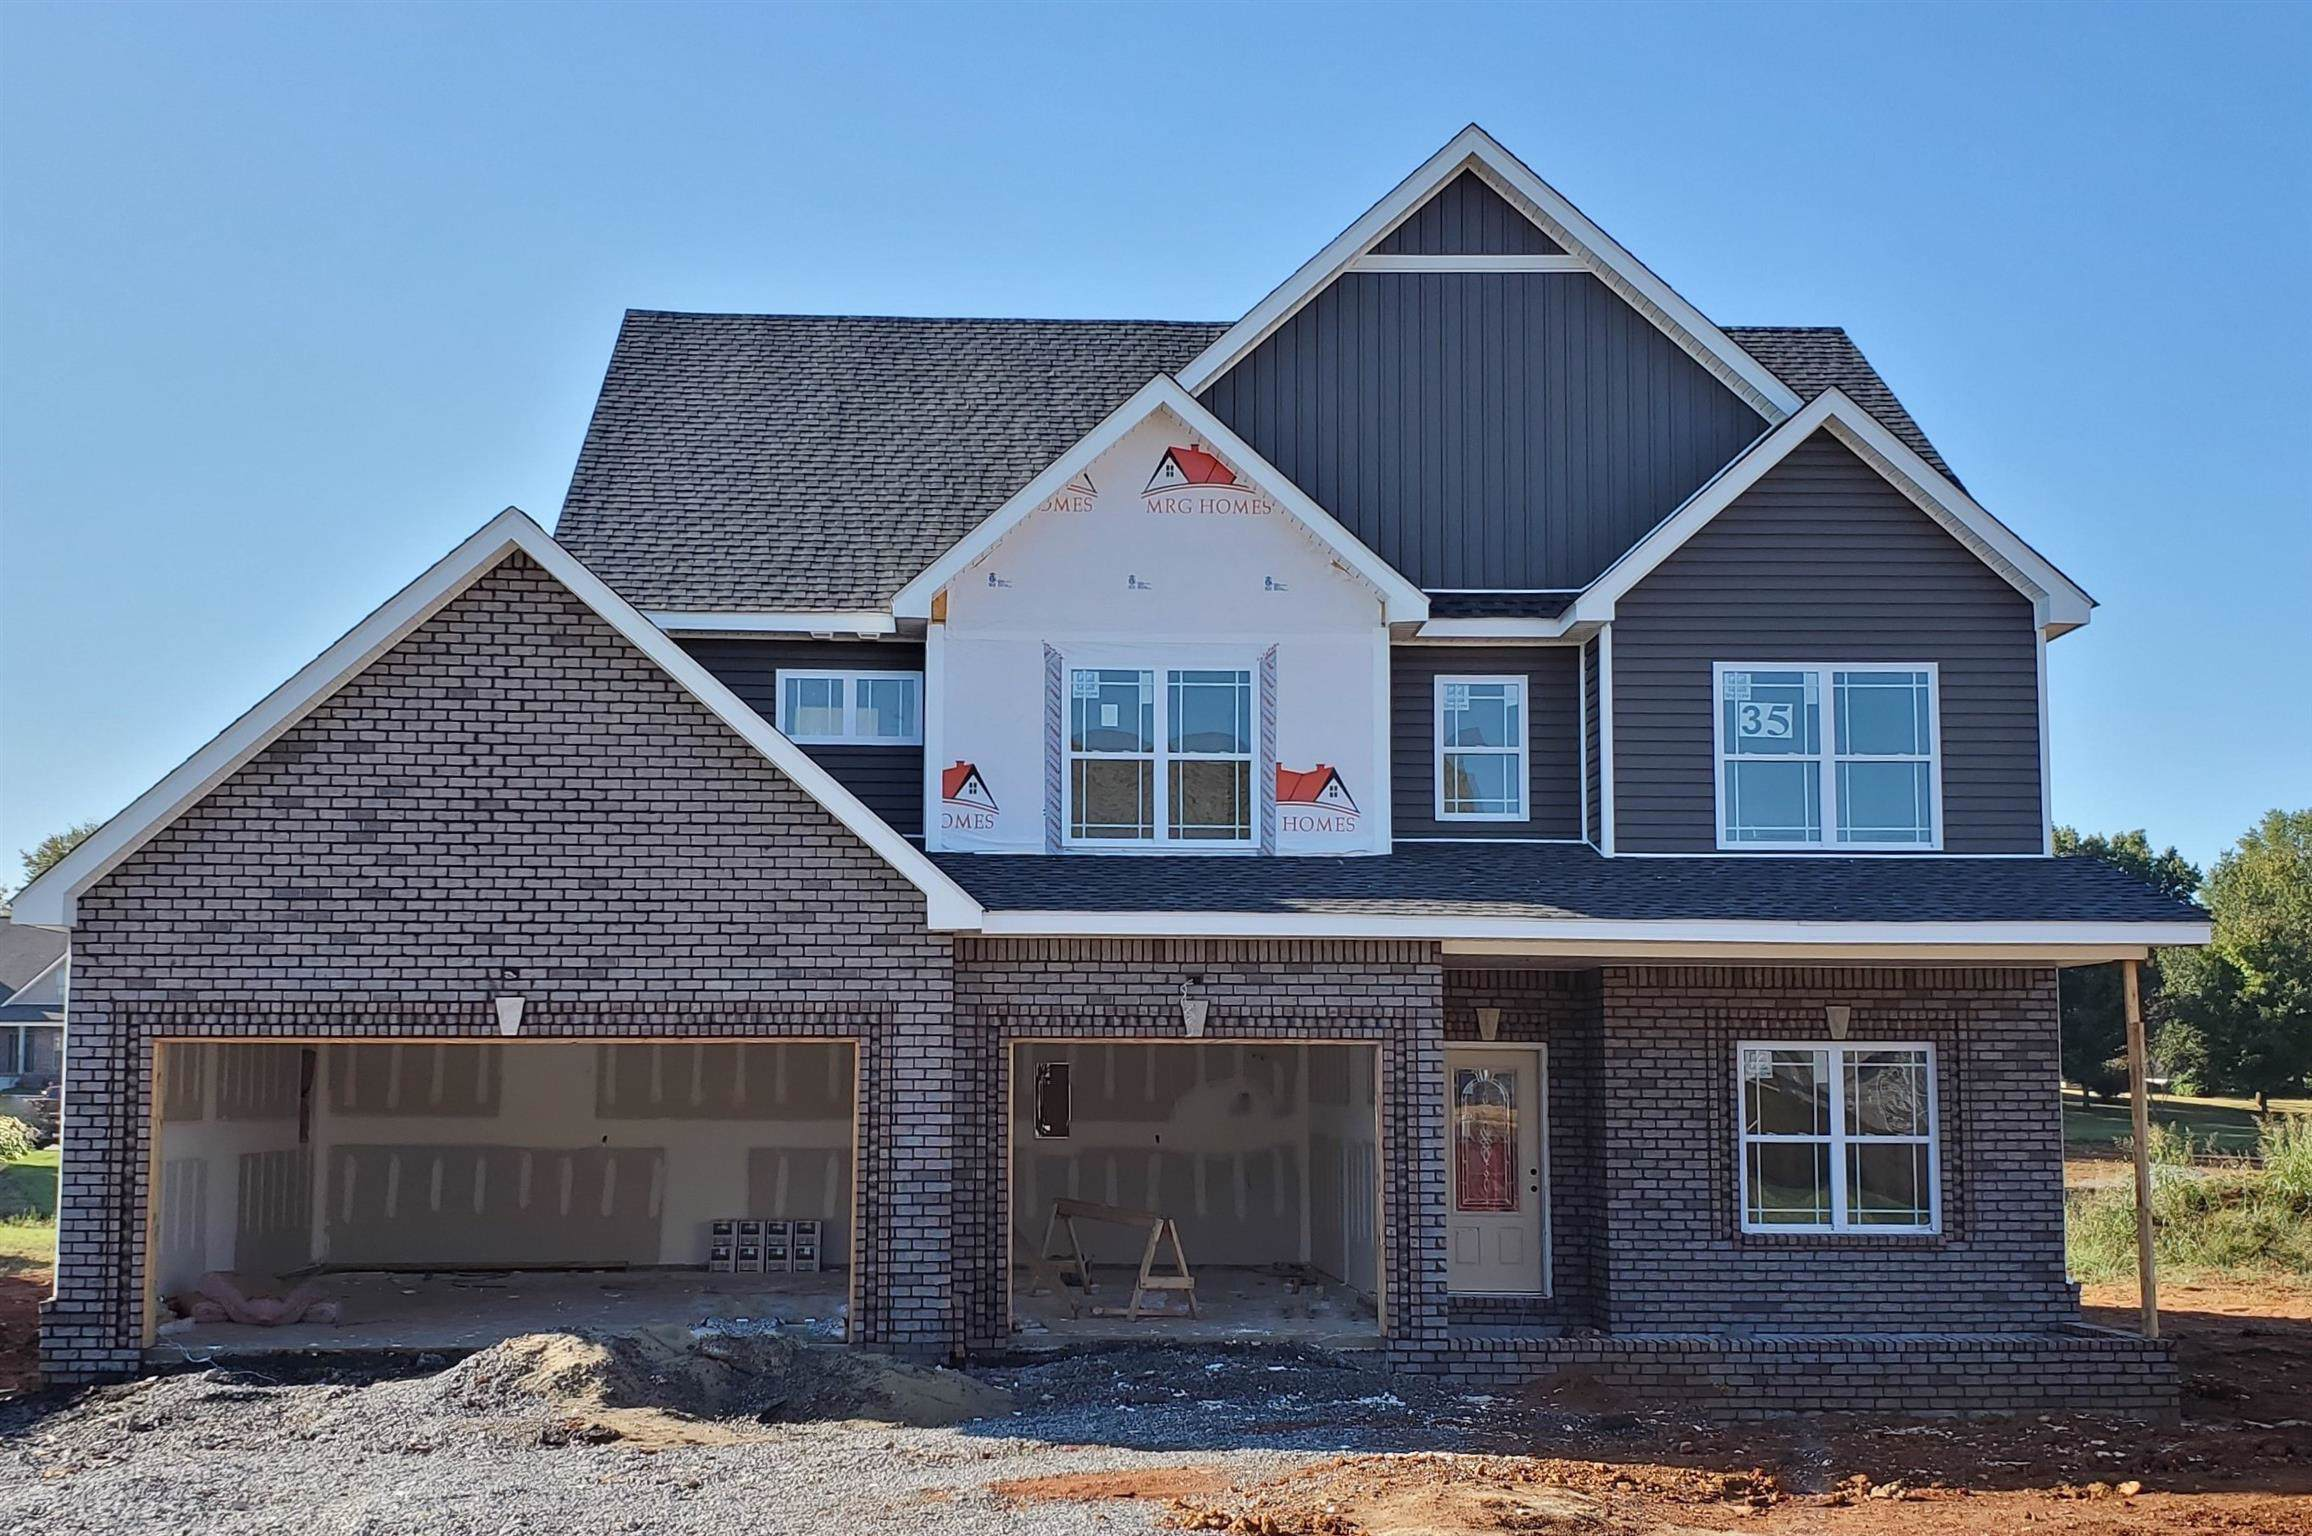 35 Woodford Estates, Clarksville, TN 37043 (MLS #RTC2062994) :: CityLiving Group